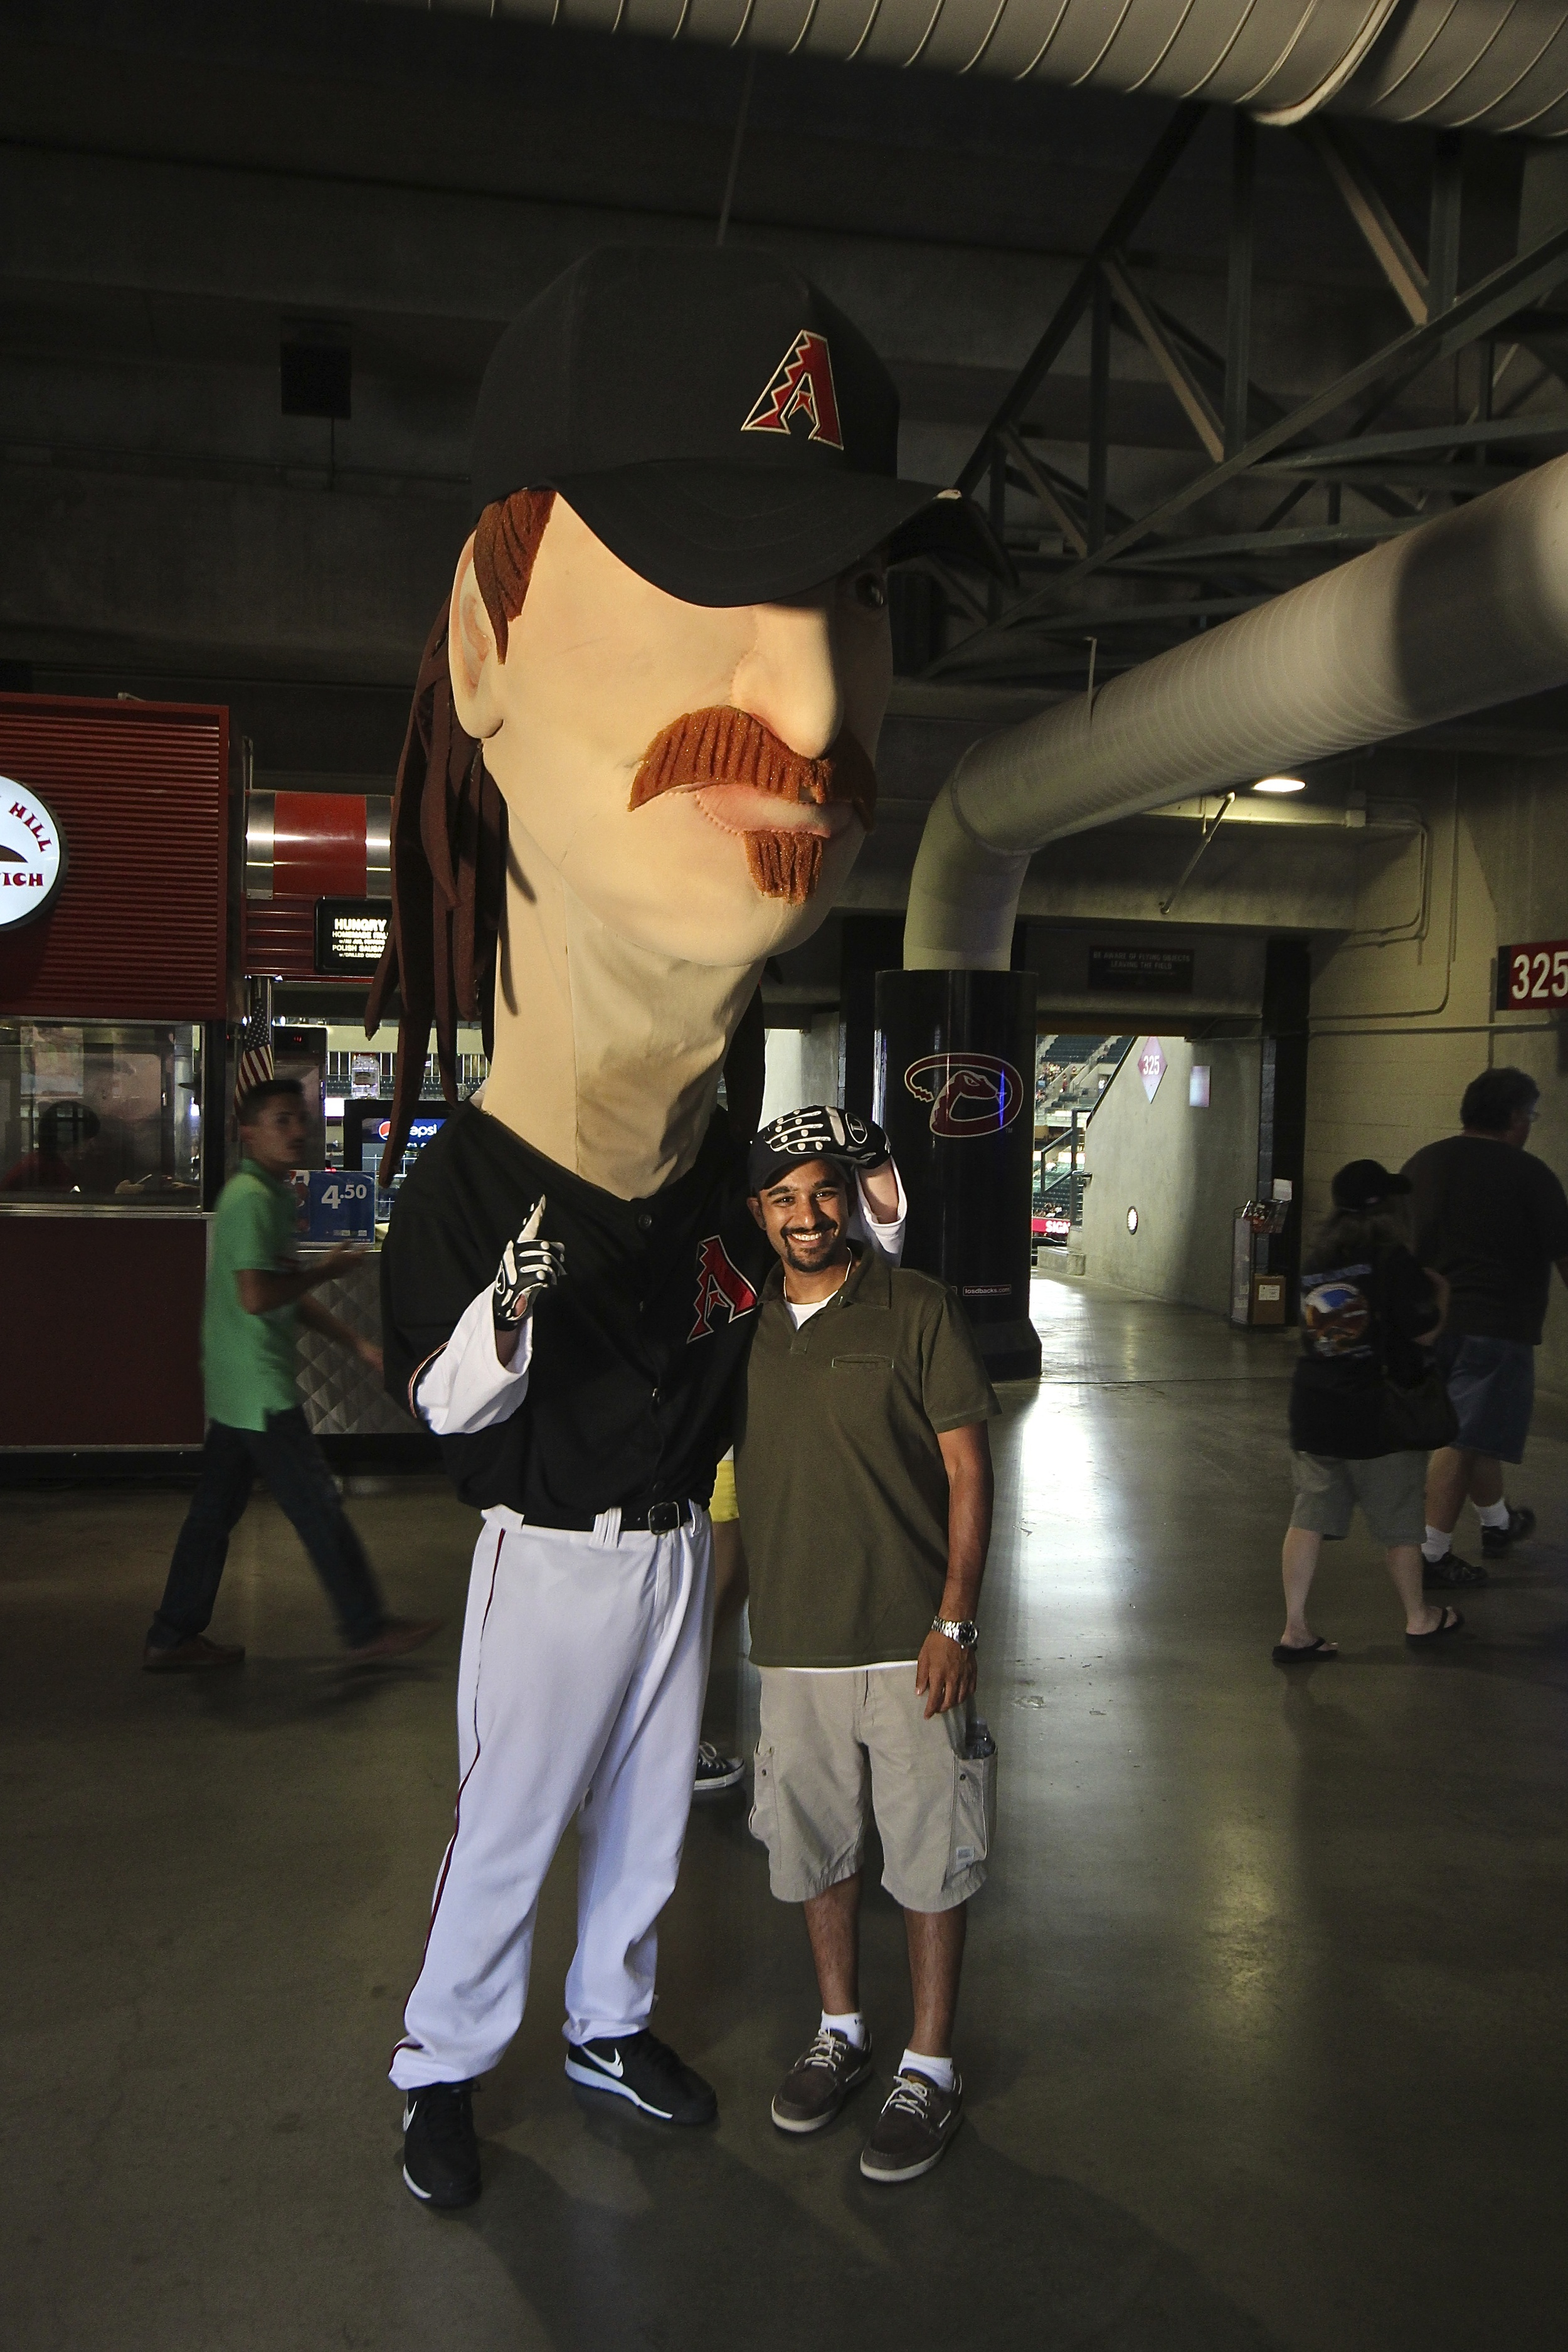 Me and Randy Johnson